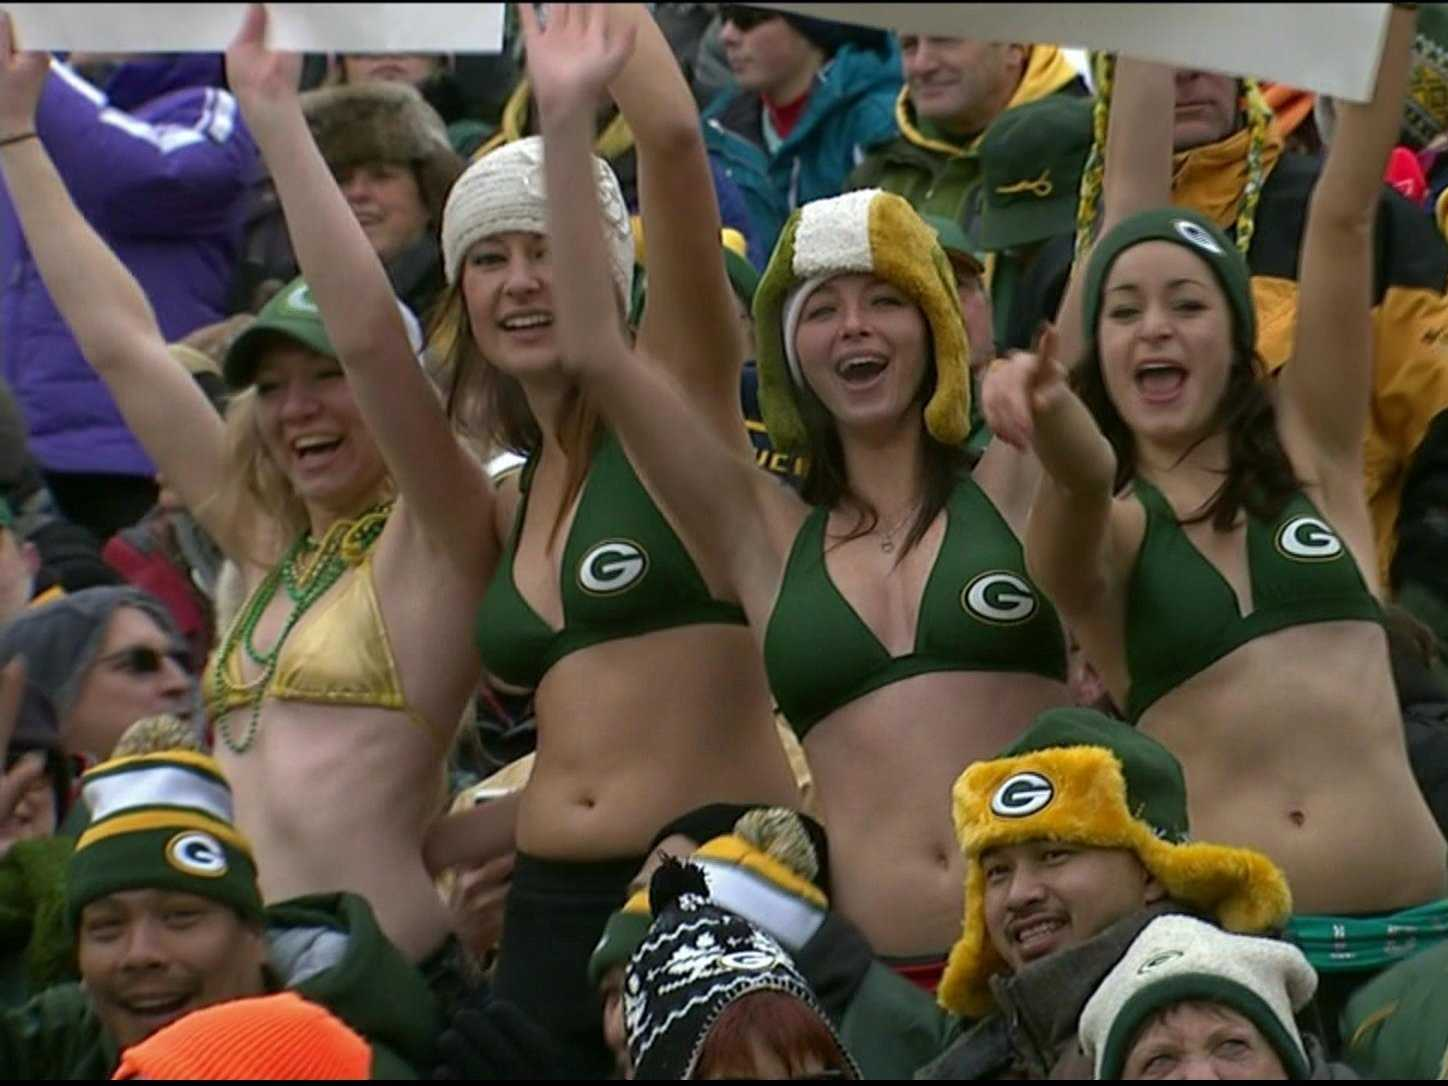 There S A New Dating Site Specifically For Green Bay